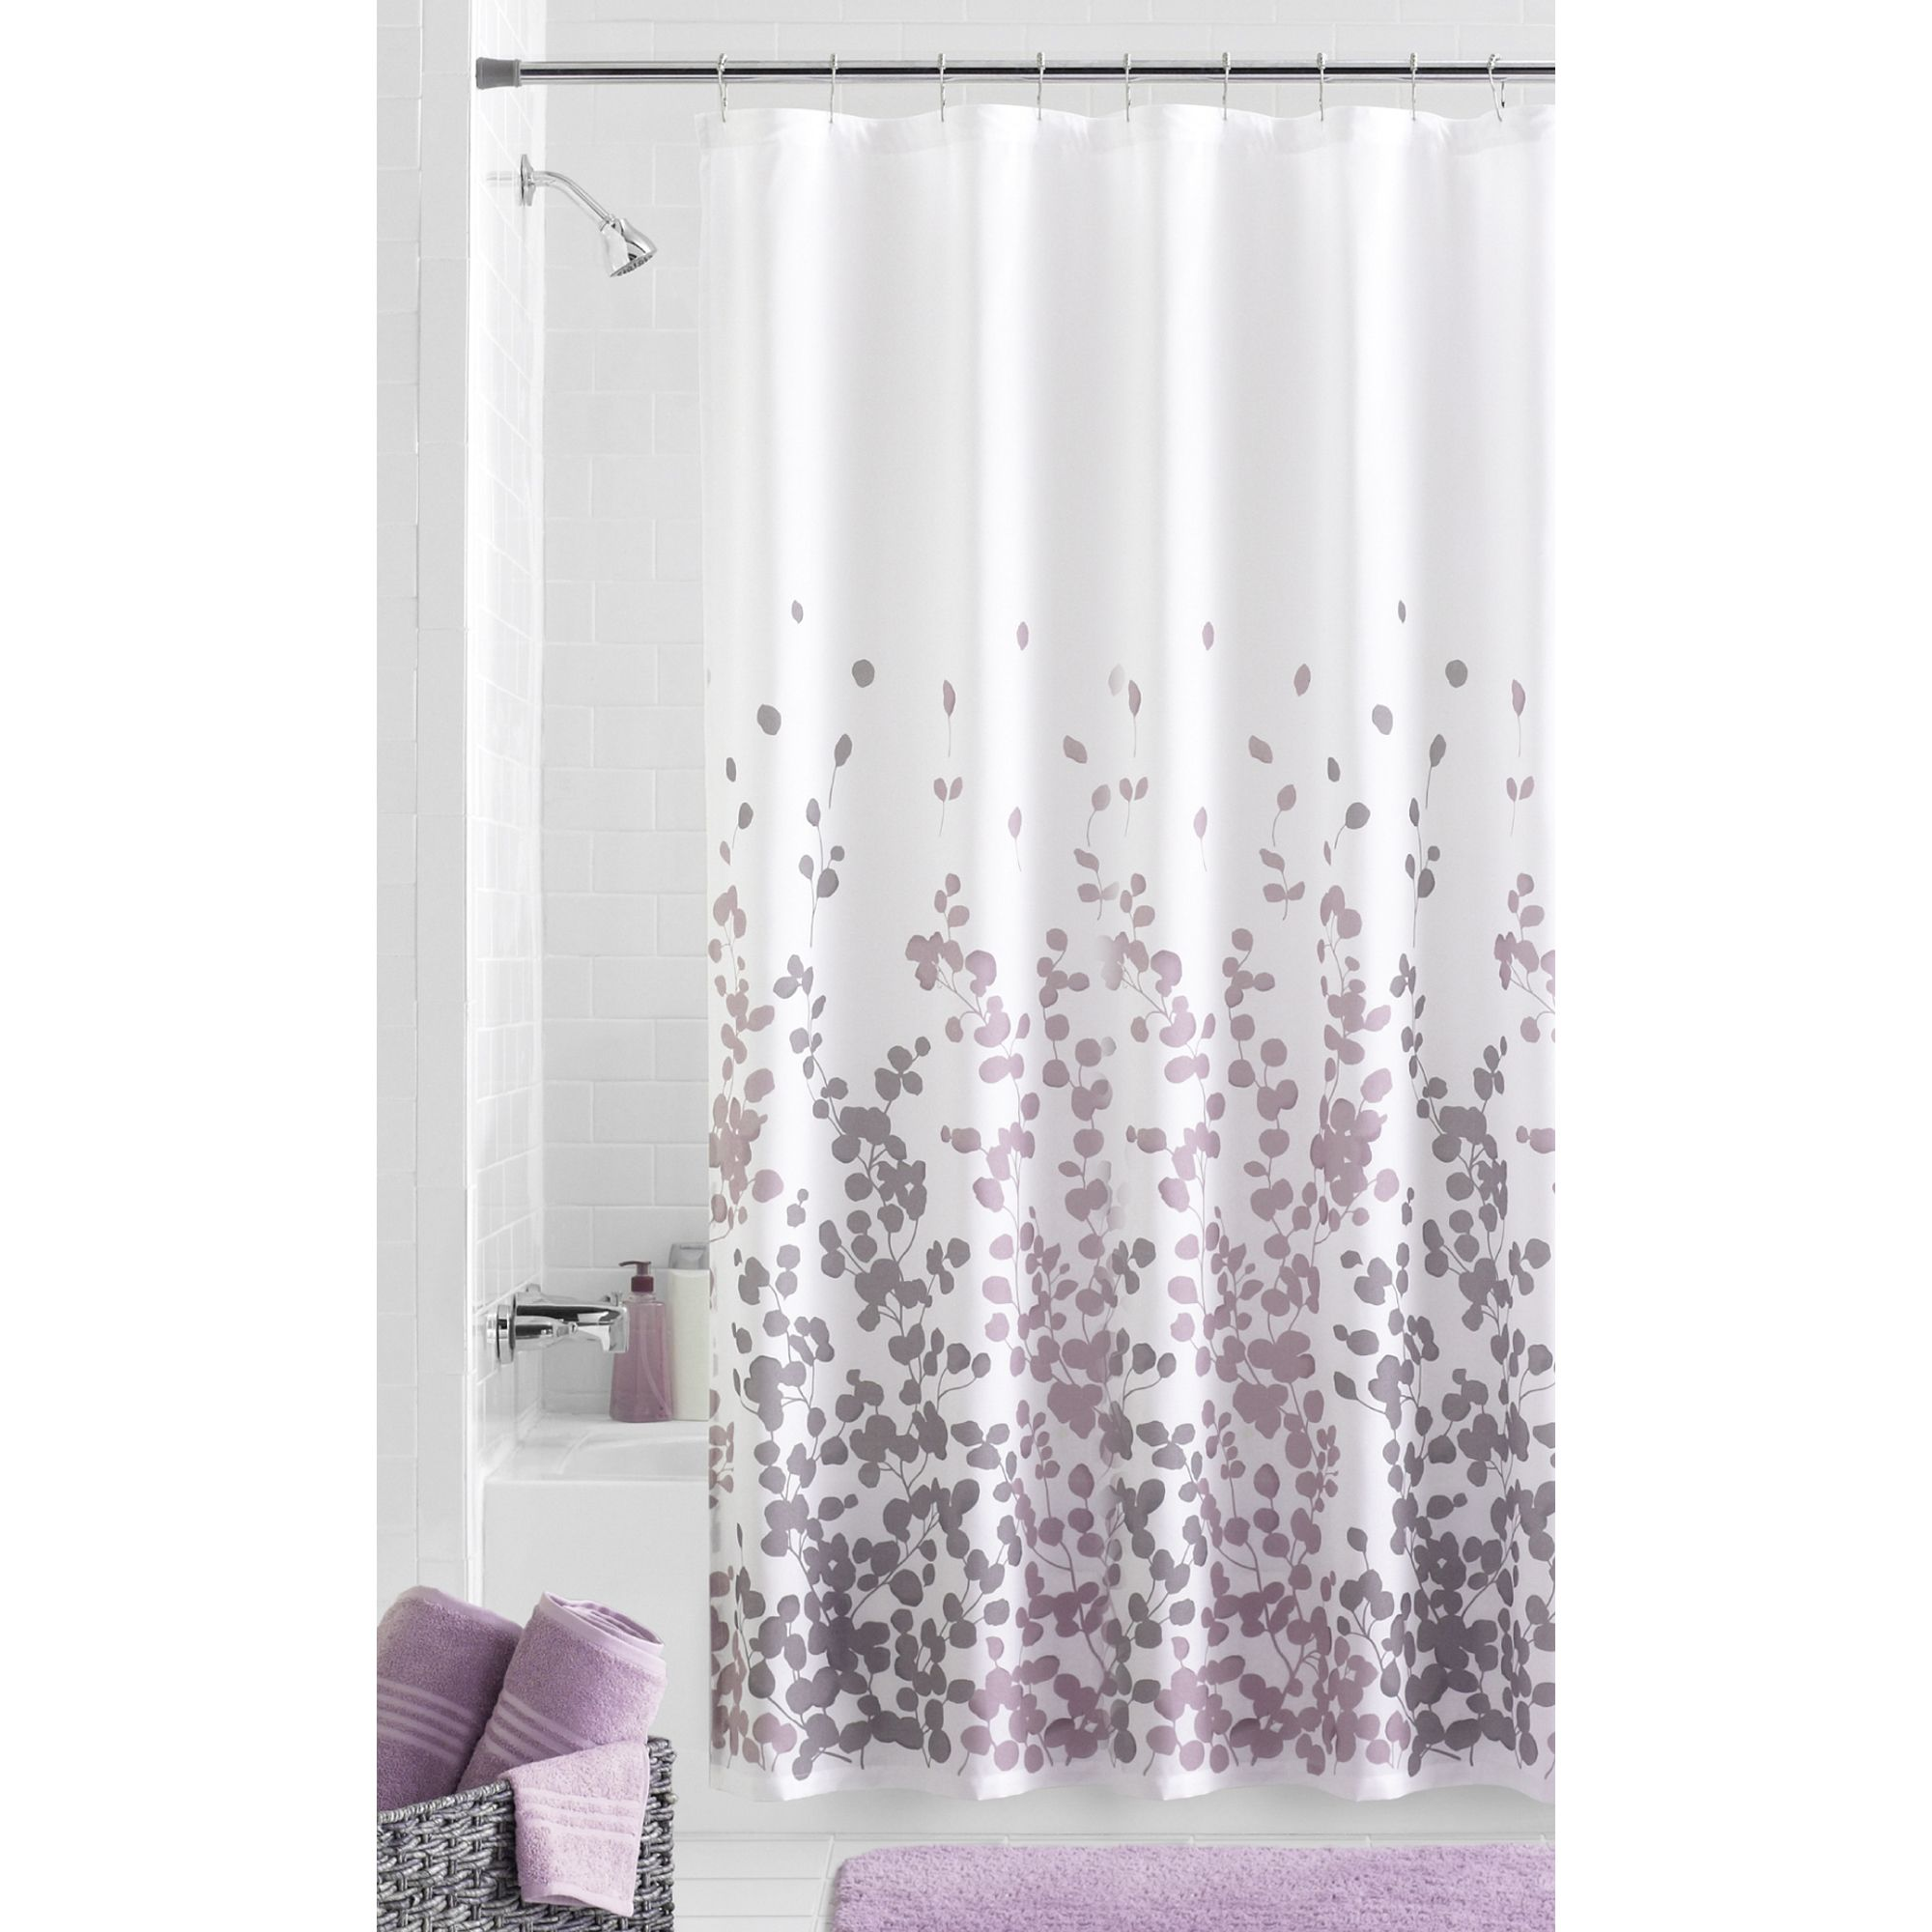 Apt 9 Shower Curtain I Have This Shower Curtain From Bed Bath And Beyond And I Love It